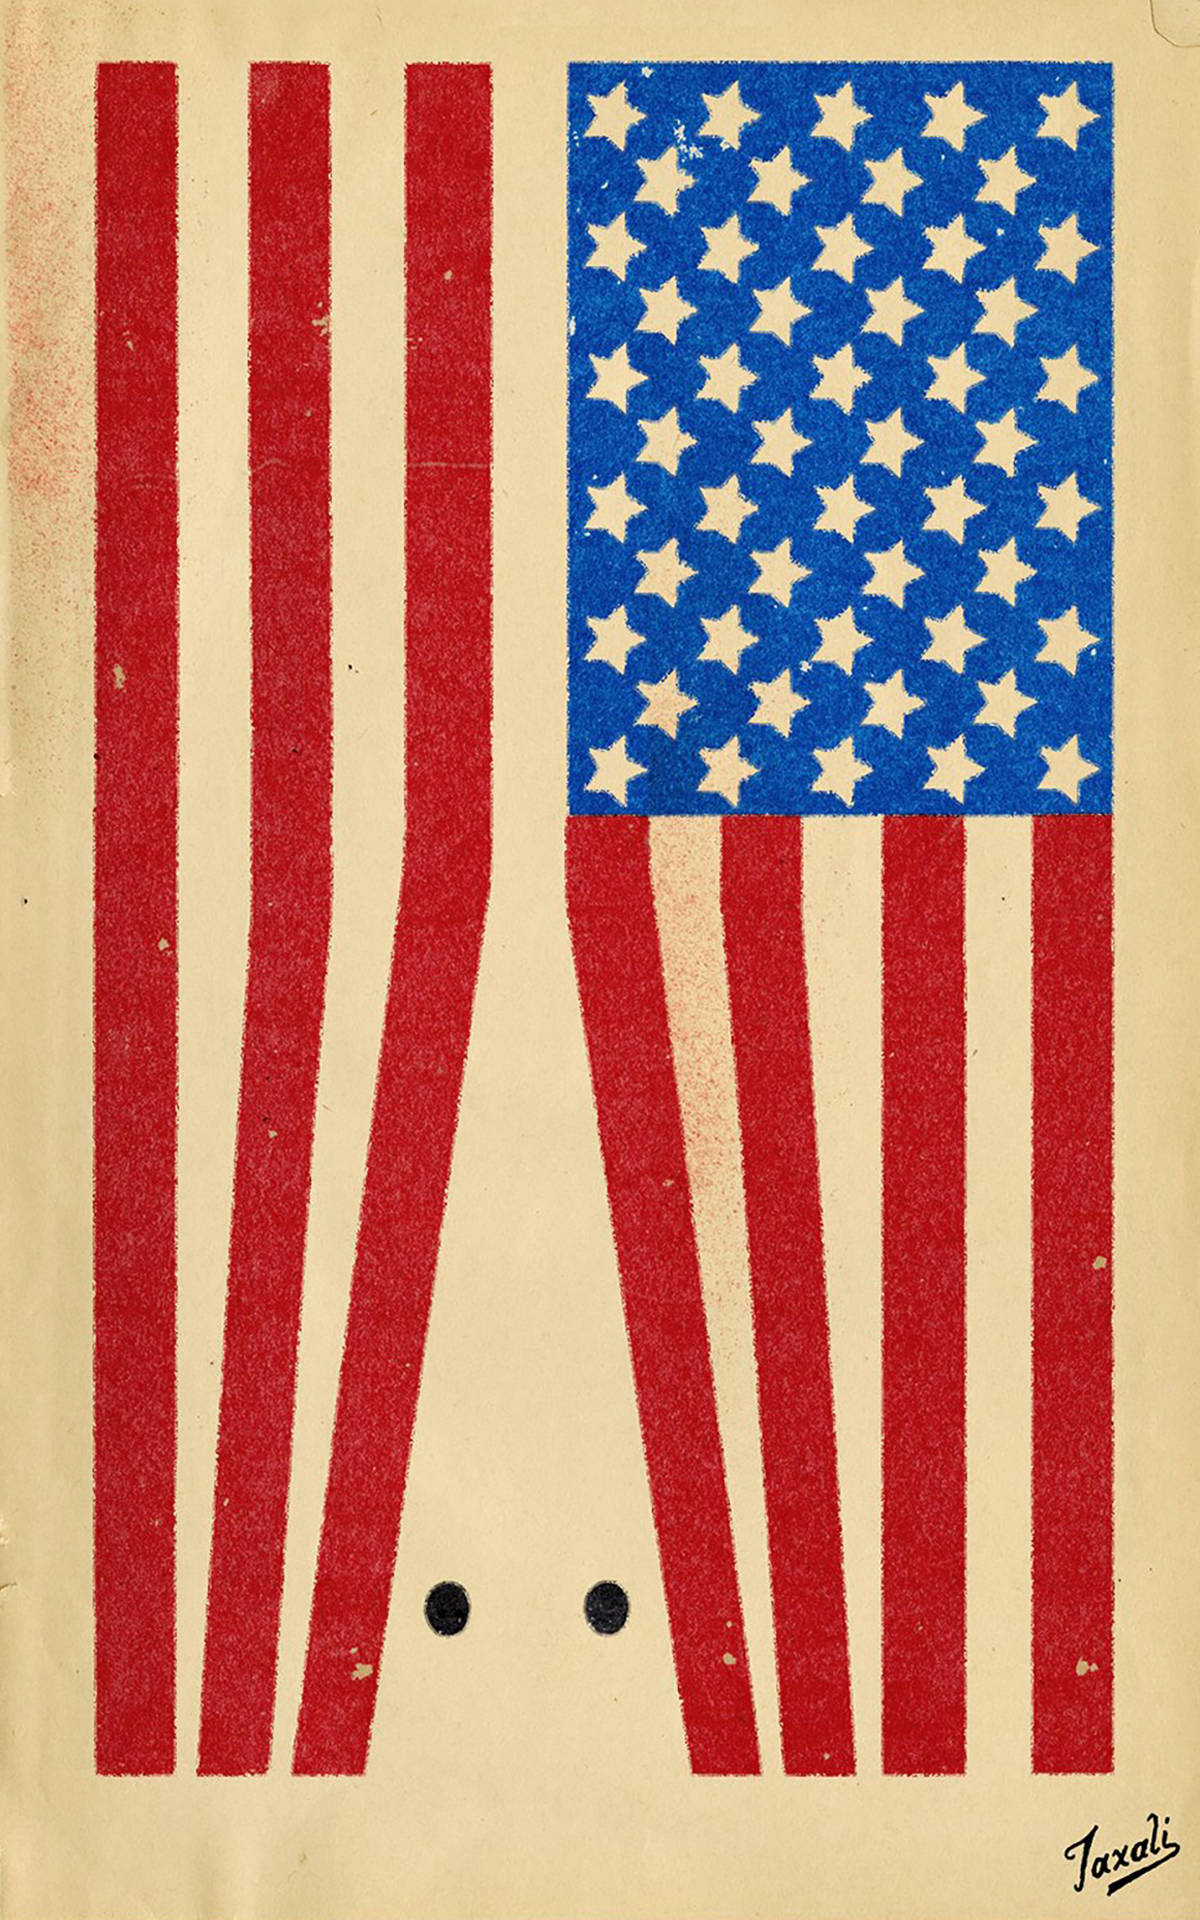 A worn print of an American flag turned on its side. The red stripes form a shape of a KKK hood, 2 black circles for eyes.